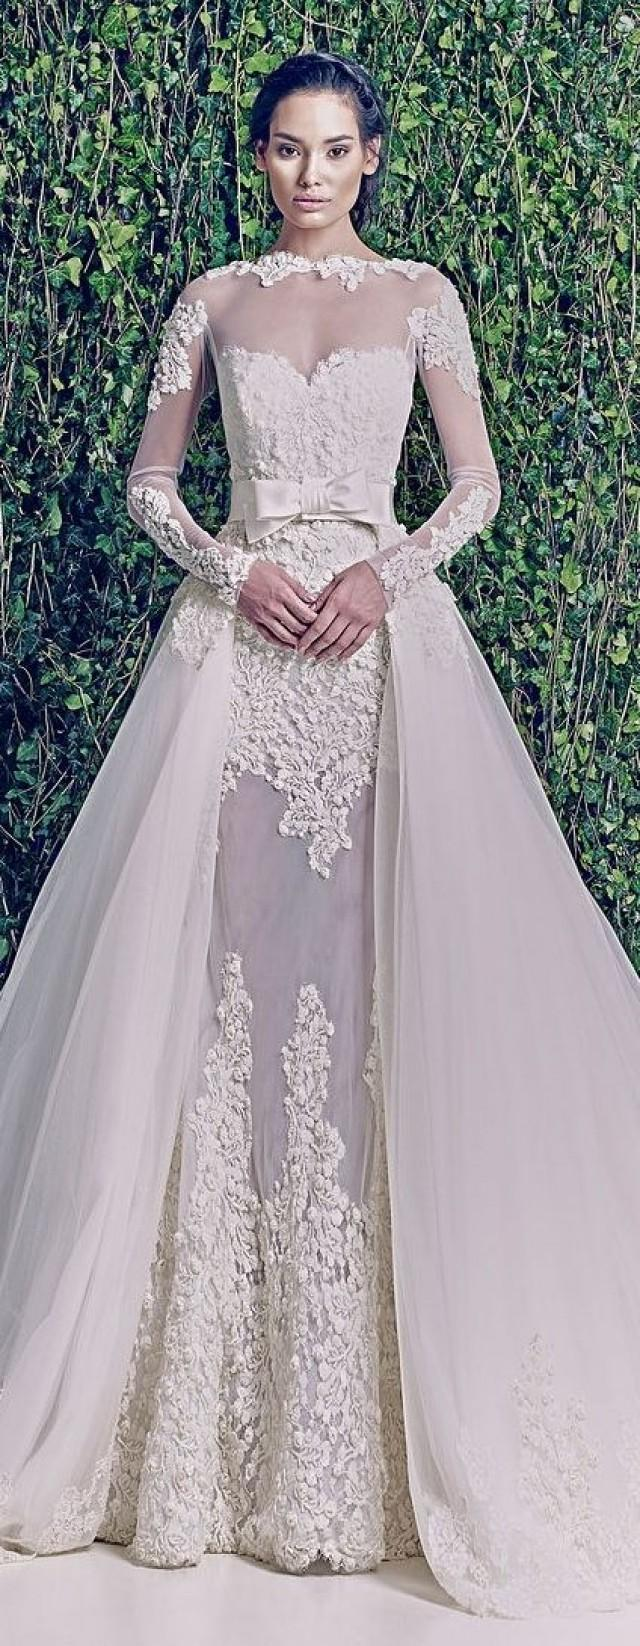 Dress - Wedding Dress With Fine Lace Work #2026590 - Weddbook